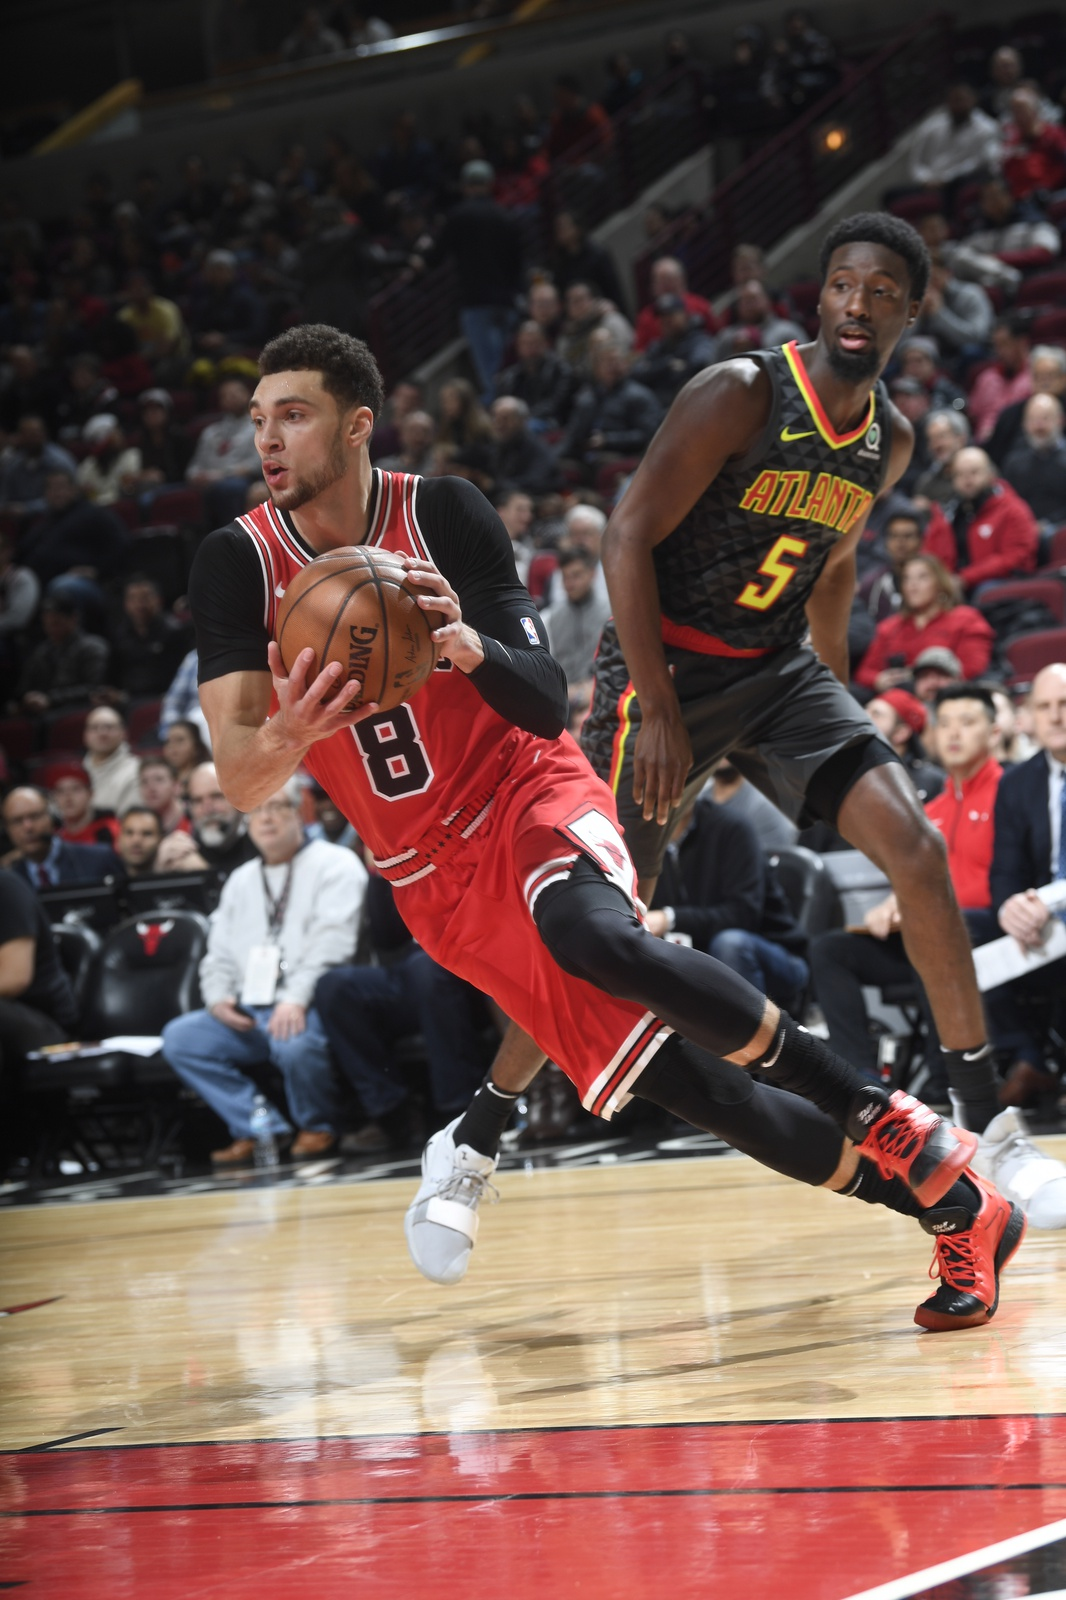 Zach LaVine dribbles the ball in a game against the Hawks